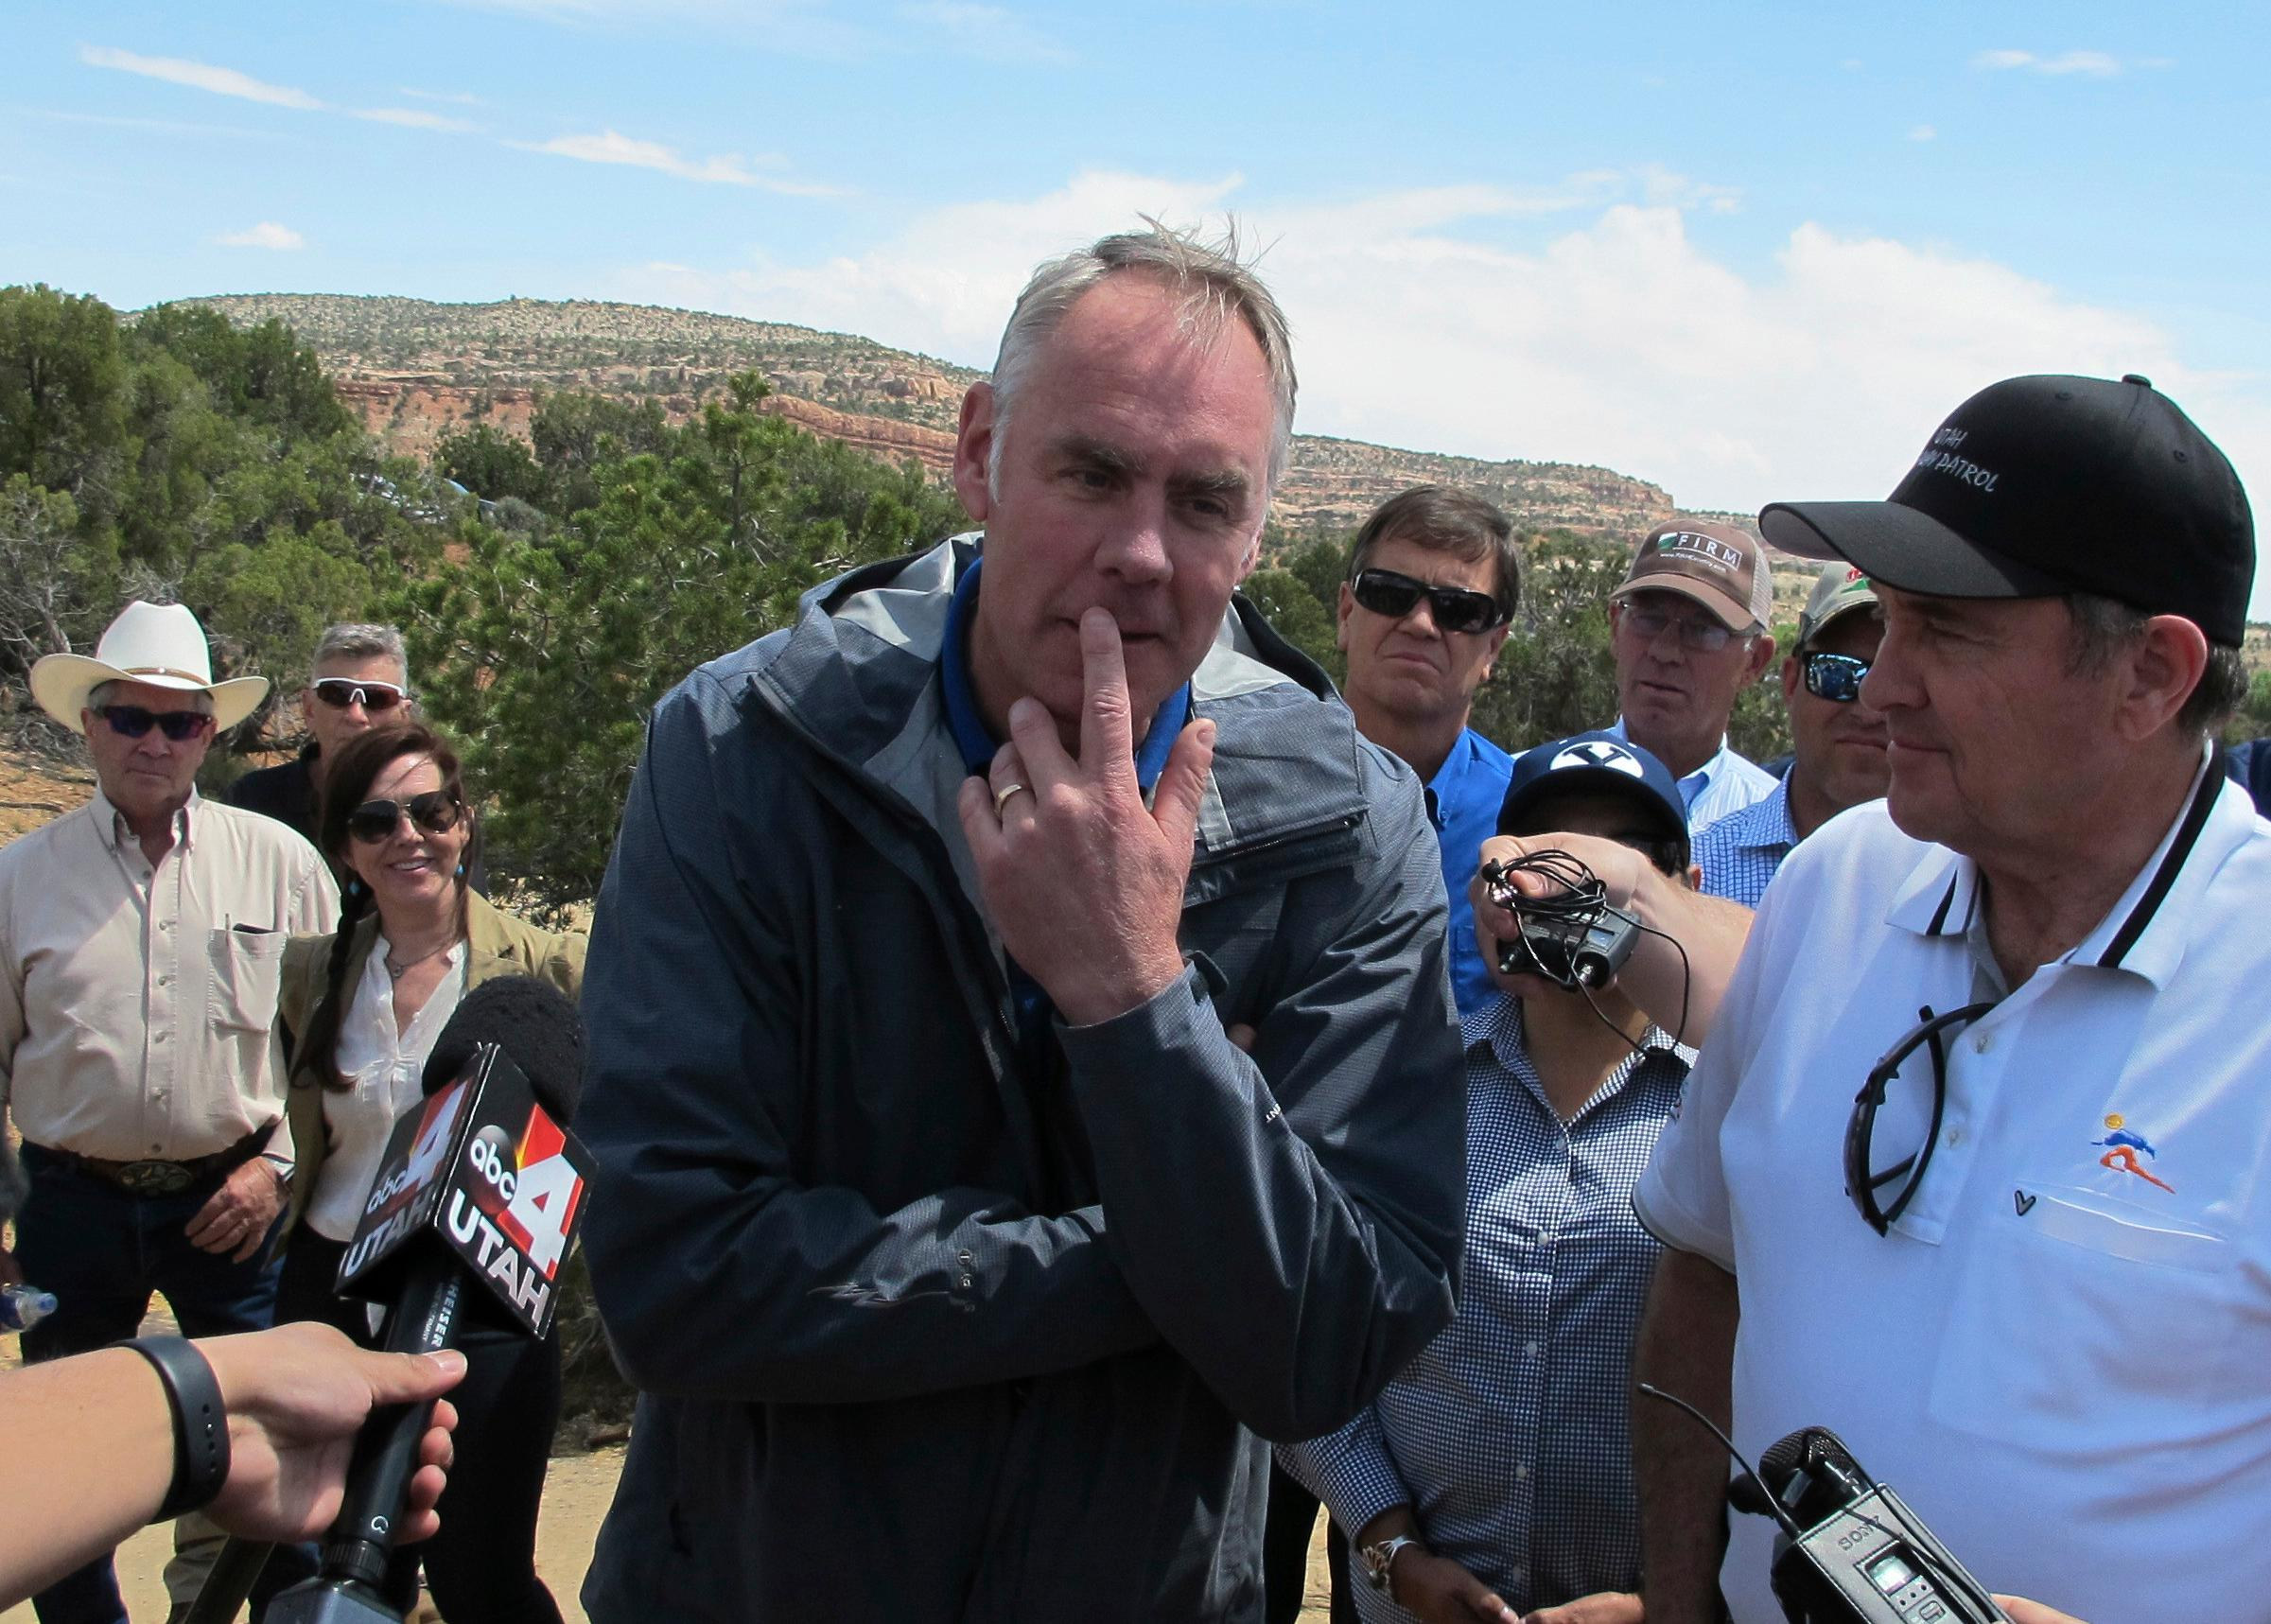 Interior Secretary Ryan Zinke, center, is joined by Utah Gov. Gary Herbert, right, during a press conference Monday, May 8, 2017, at the Butler Wash trailhead within Bears Ears National Monument near Blanding, Utah. Zinke says he wants to make sure Native American cultural standing is preserved in a new national monument but cautioned that not all tribal members share the same opinion about it. (AP Photo/Michelle Price)